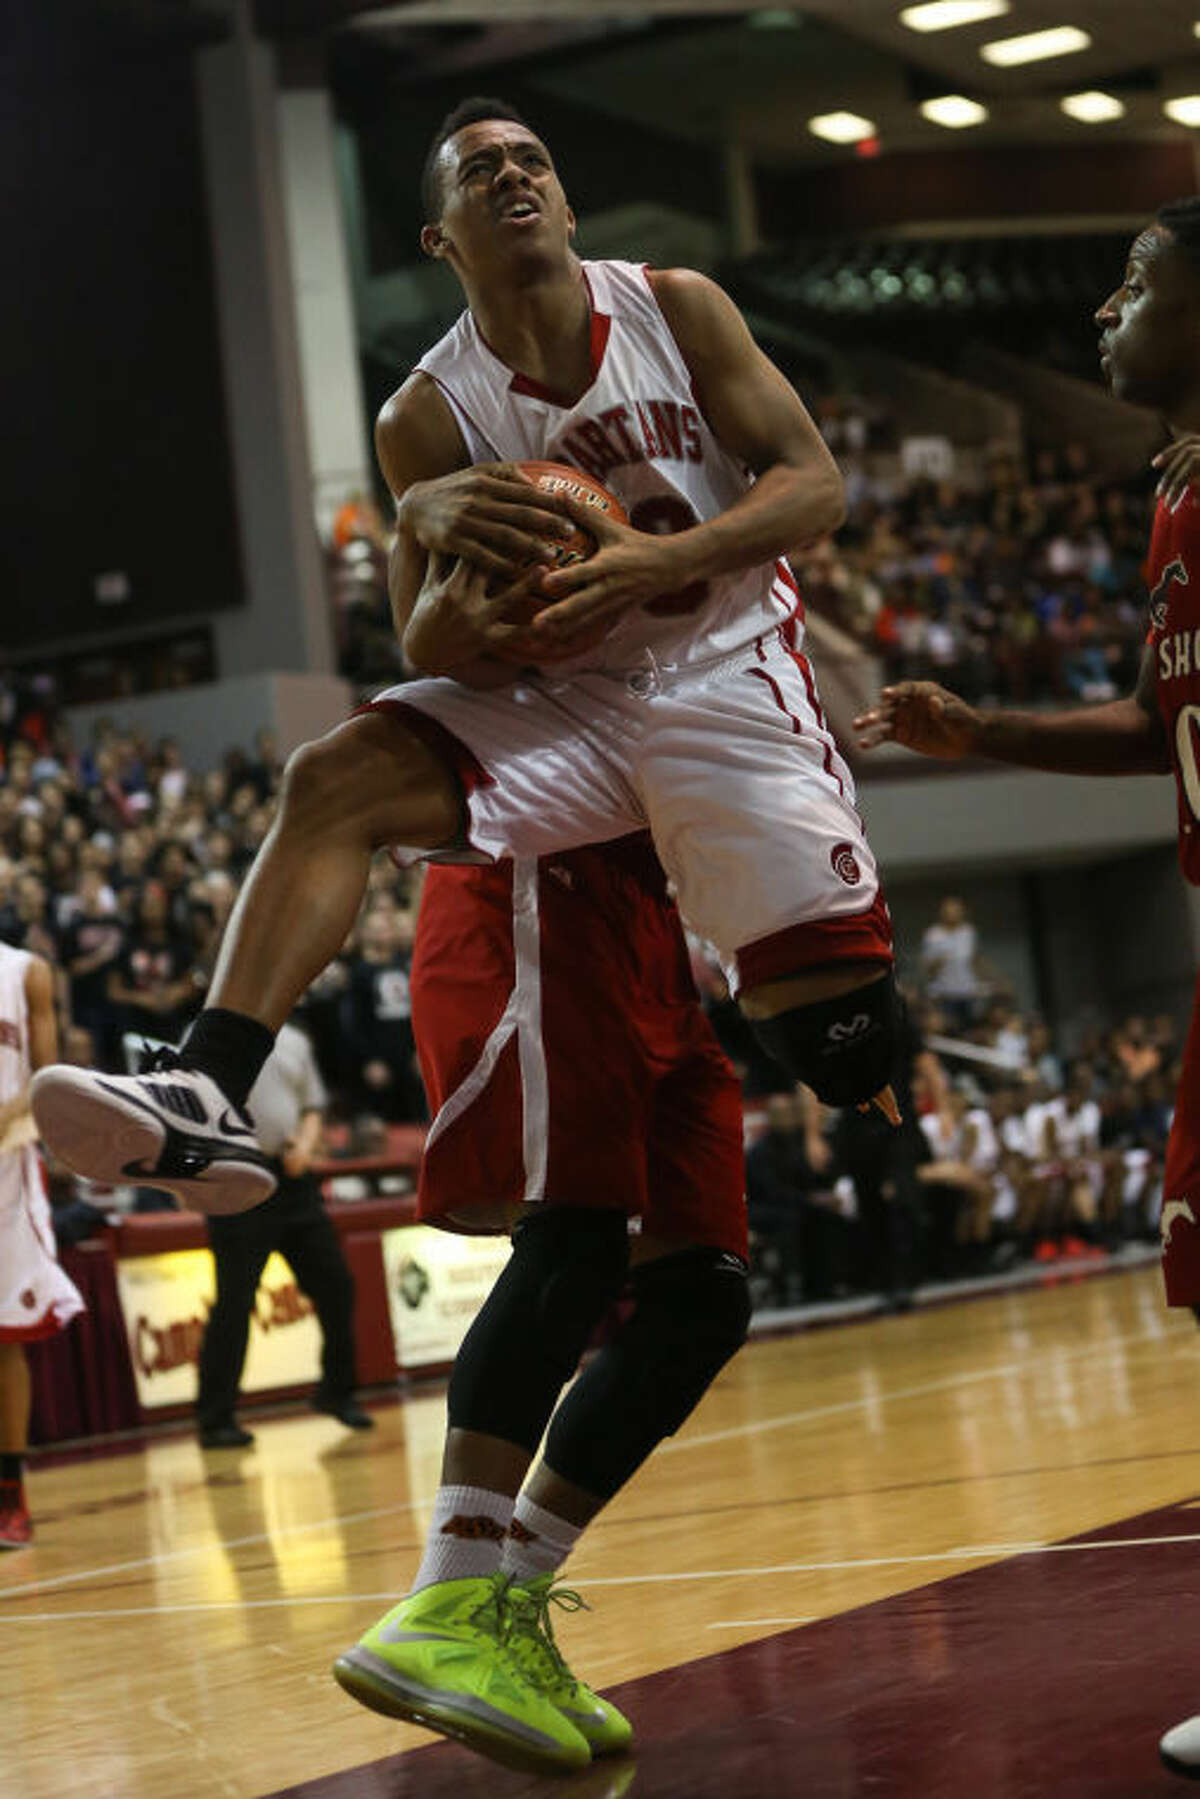 Cy Lakes' Nick Garth (3) is fouled while going for a layup North Shore on Friday at the Campbell Center. To view or purchase this photo and others like it, go to HCNPics.com. (Michael Minasi / HCN)